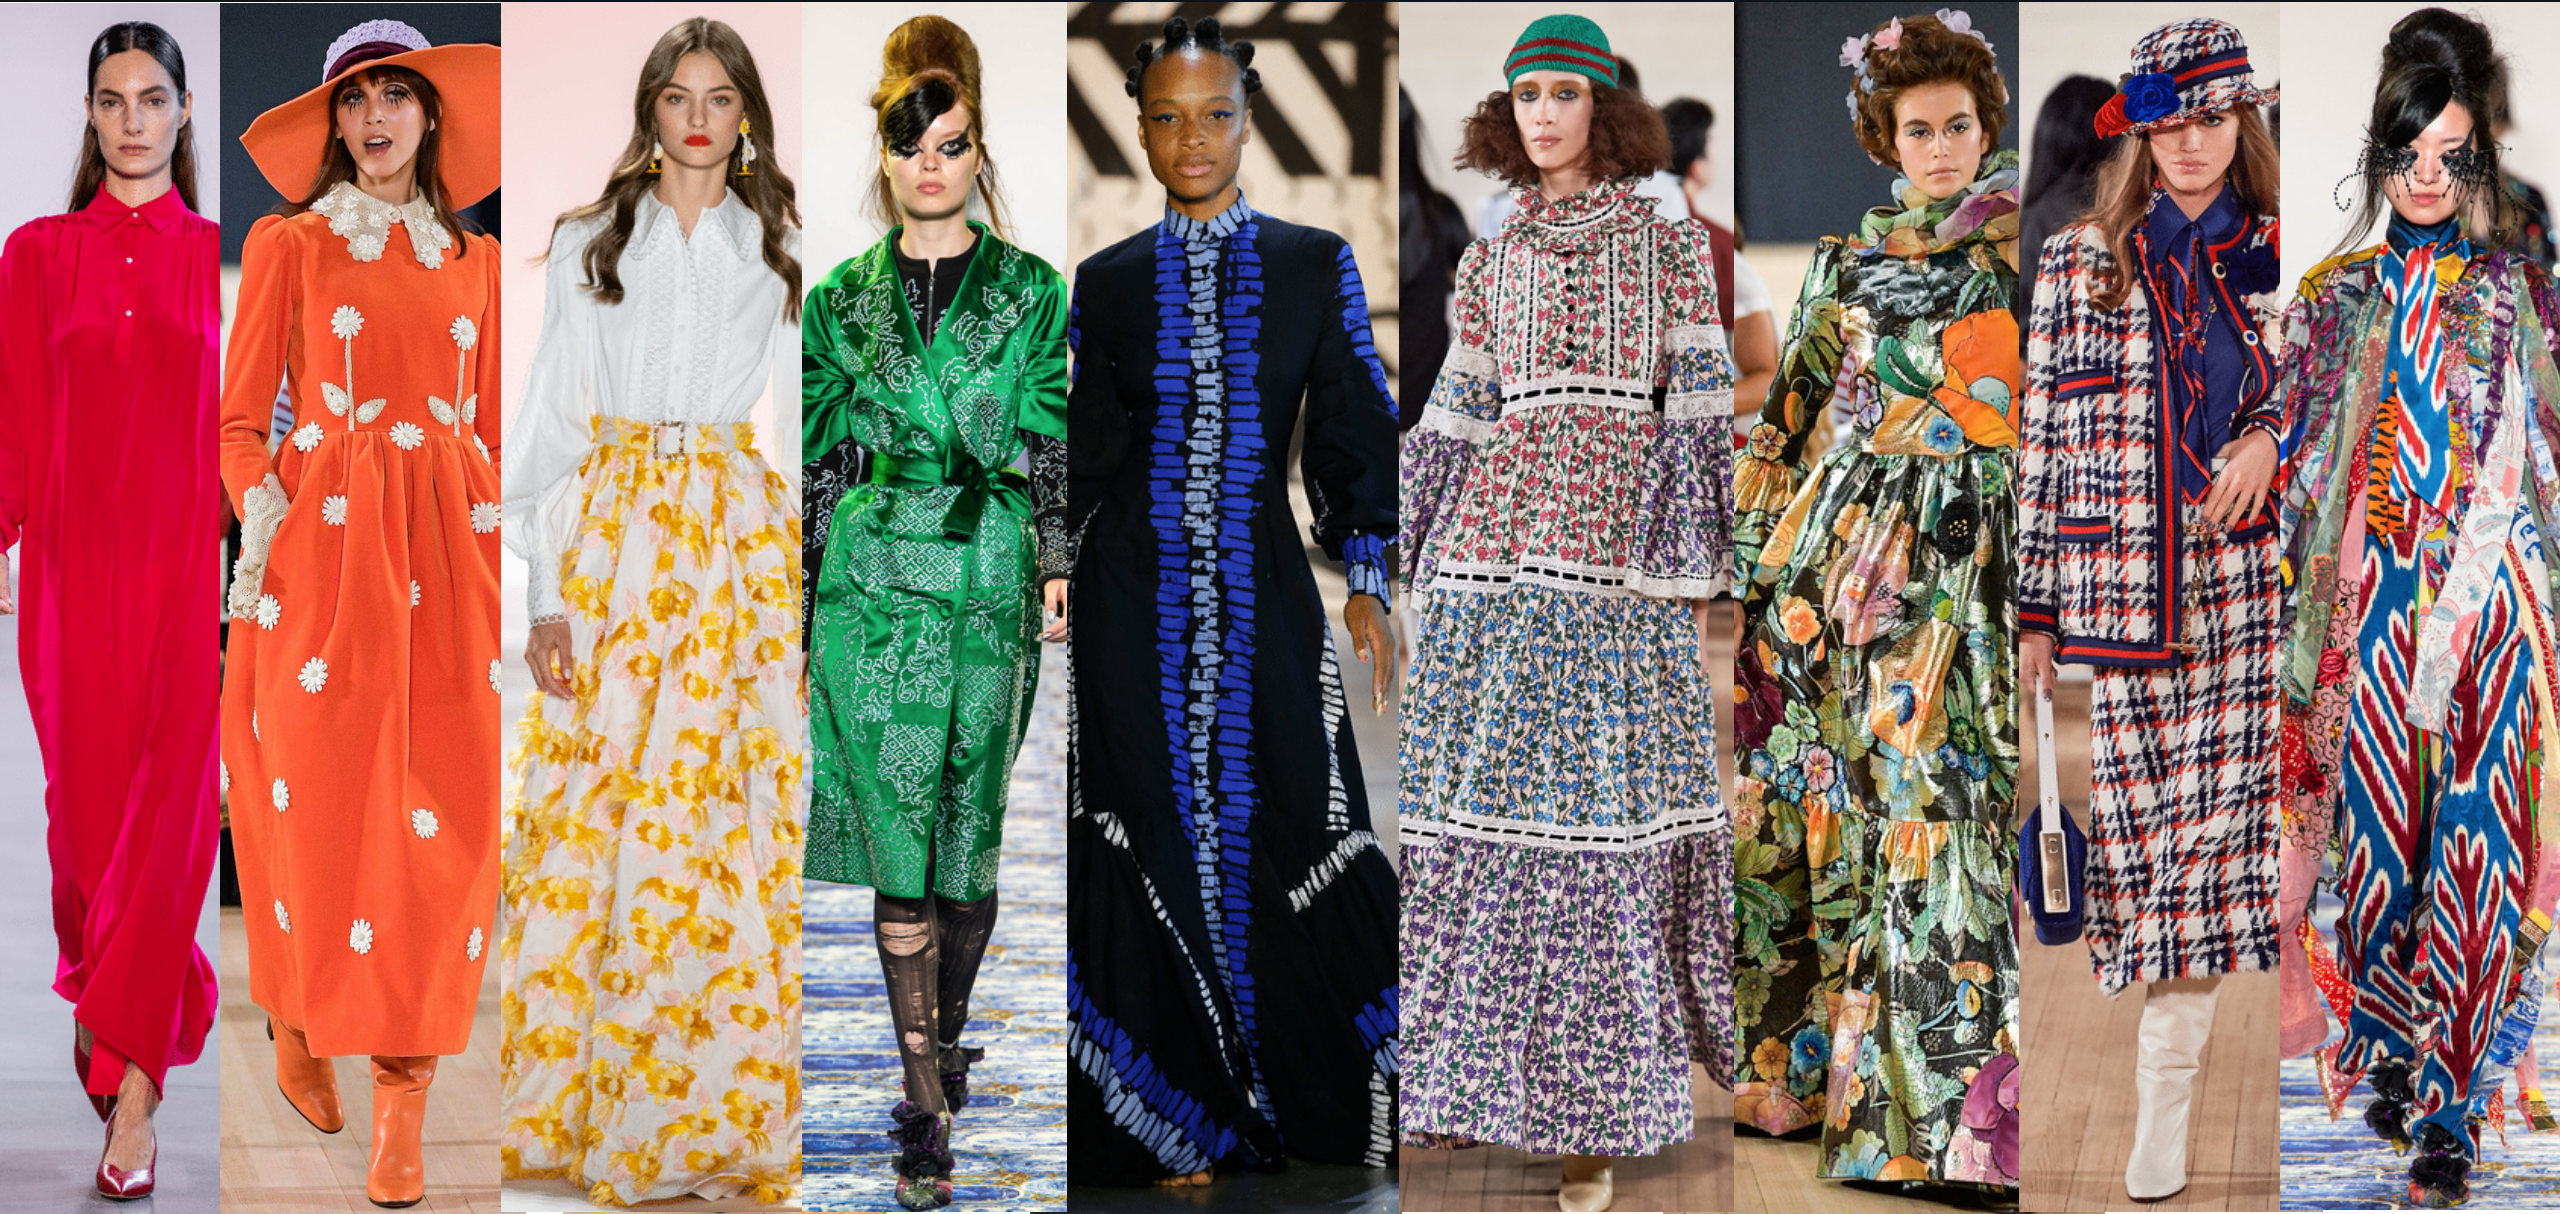 The Top Ten Modest Trends From Spring 28 Fashion Week - Jew in